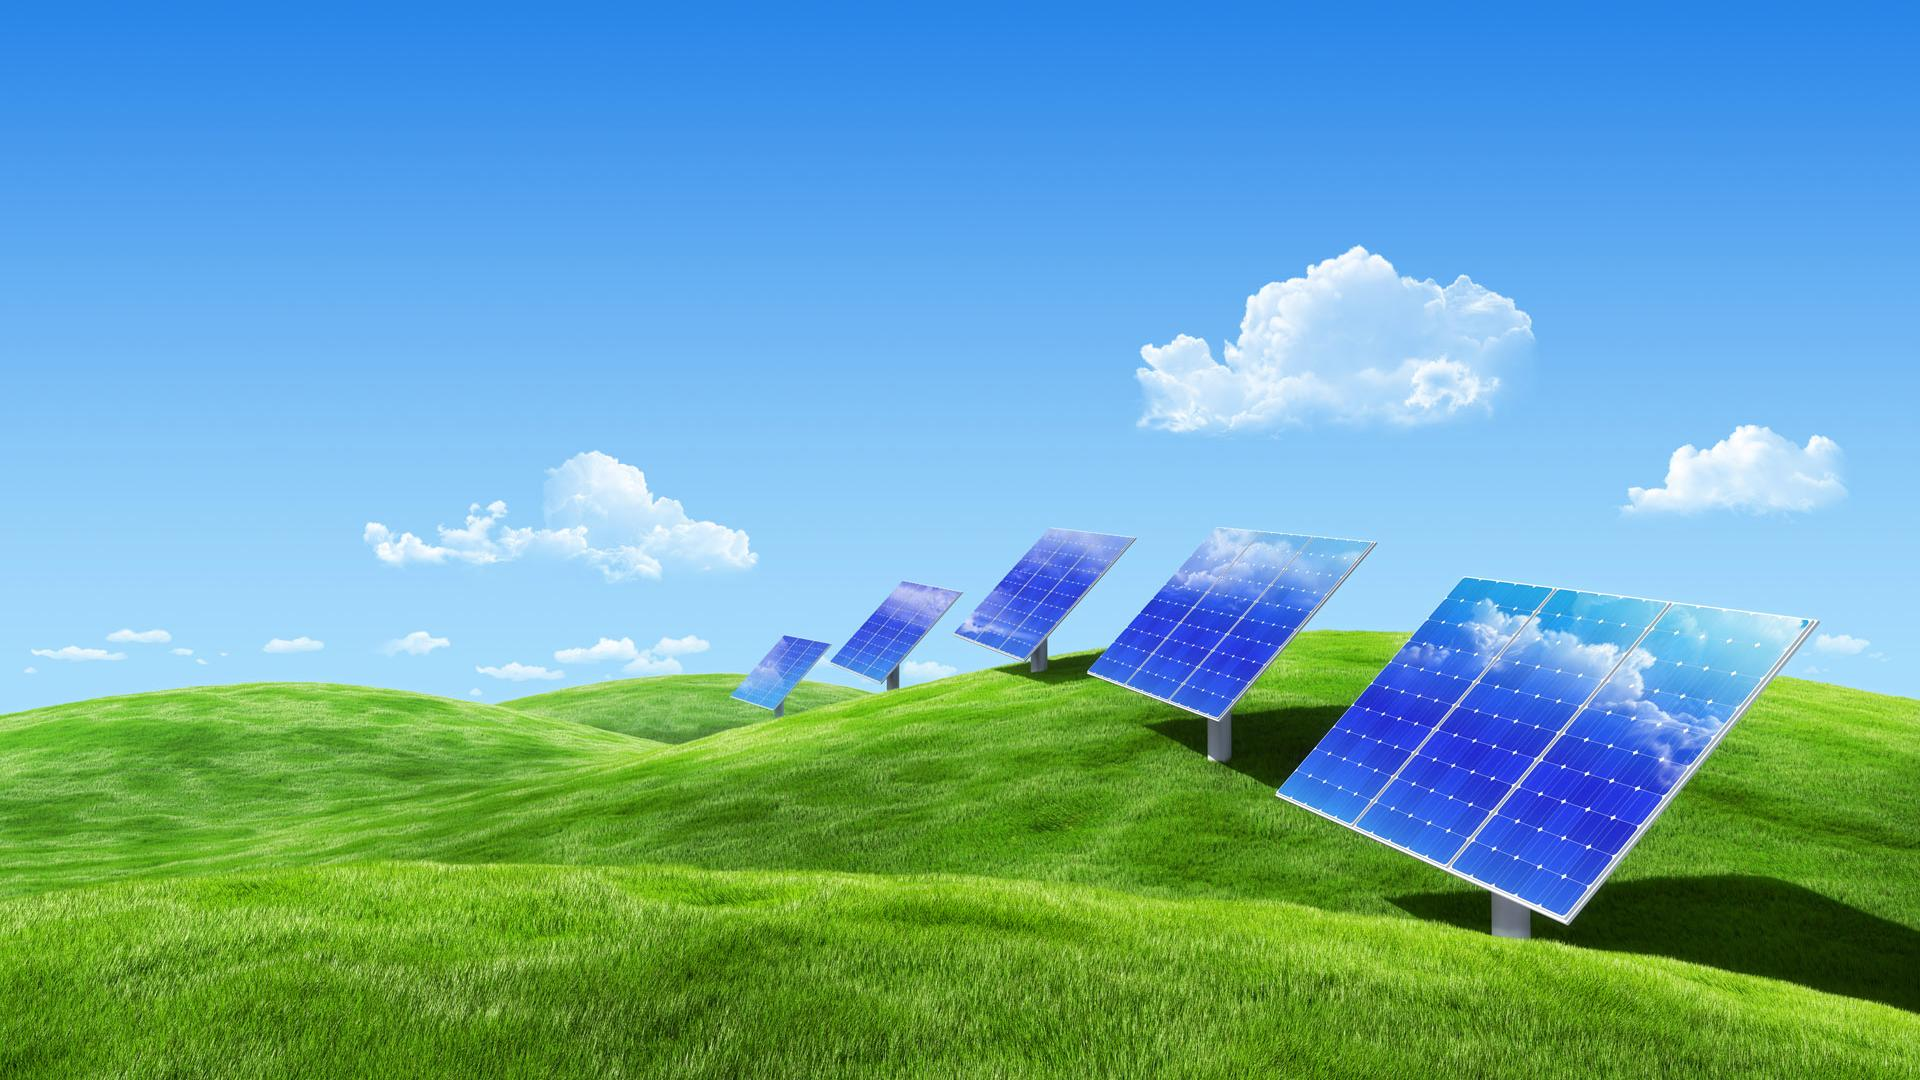 GreenSolarPower